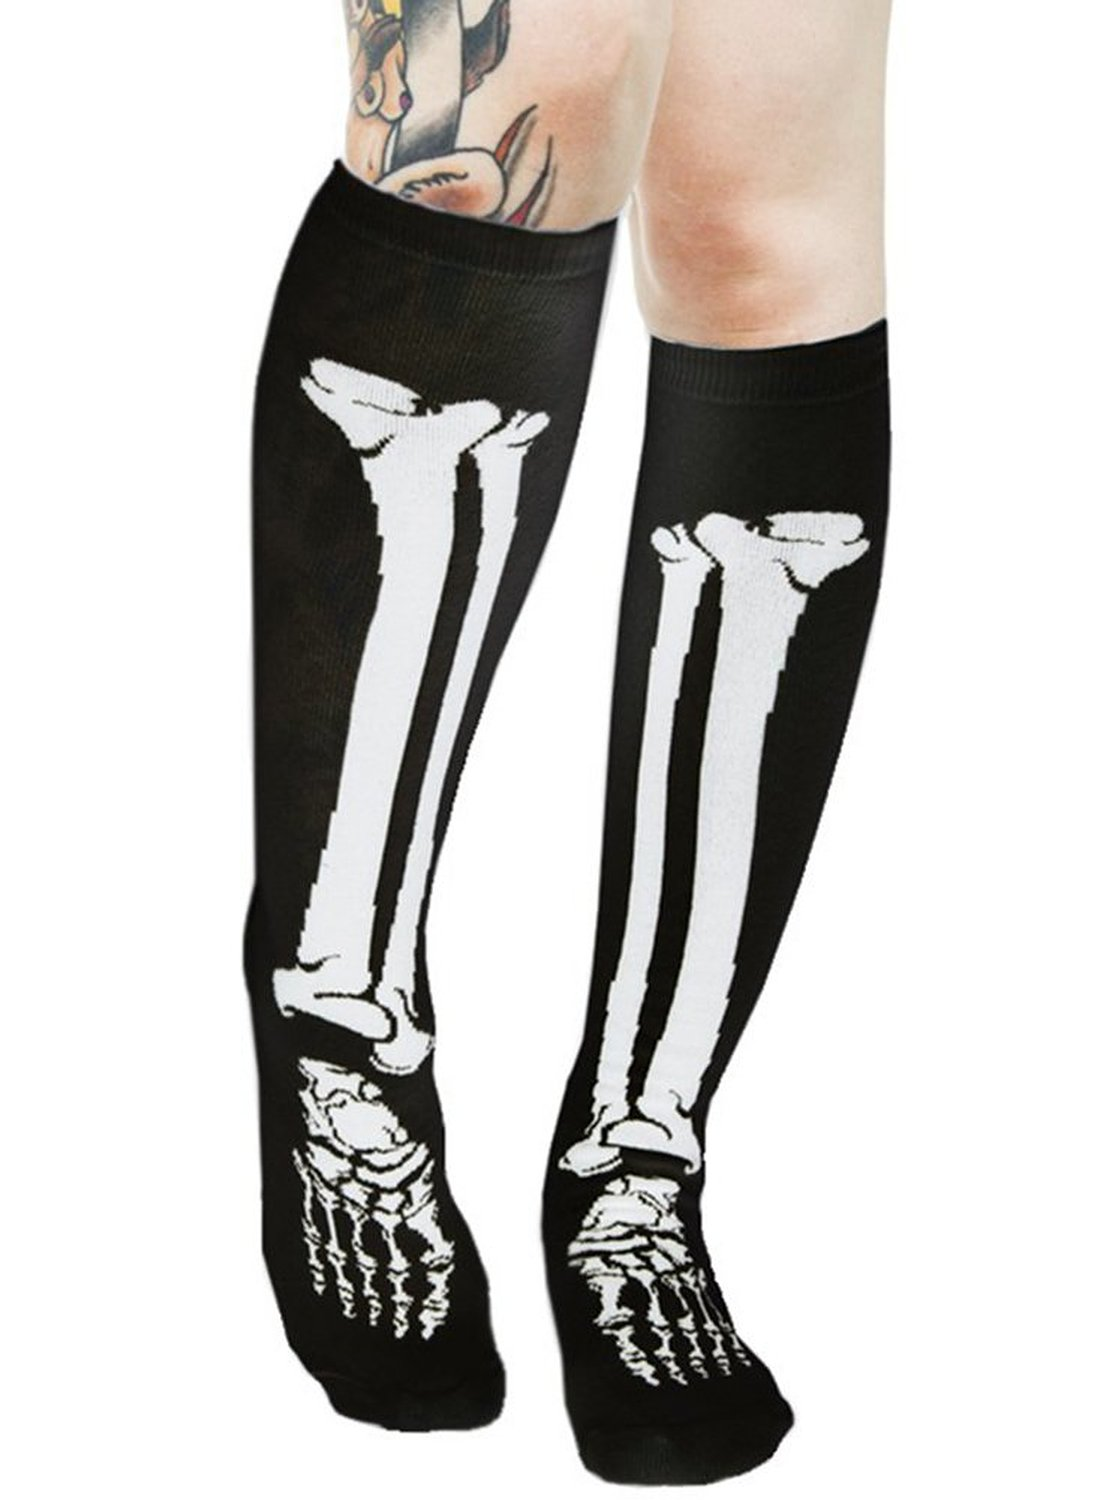 fc91a4c2d81 Amazon.com  Skeleton Bone Knee High Socks Halloween Cosplay ...